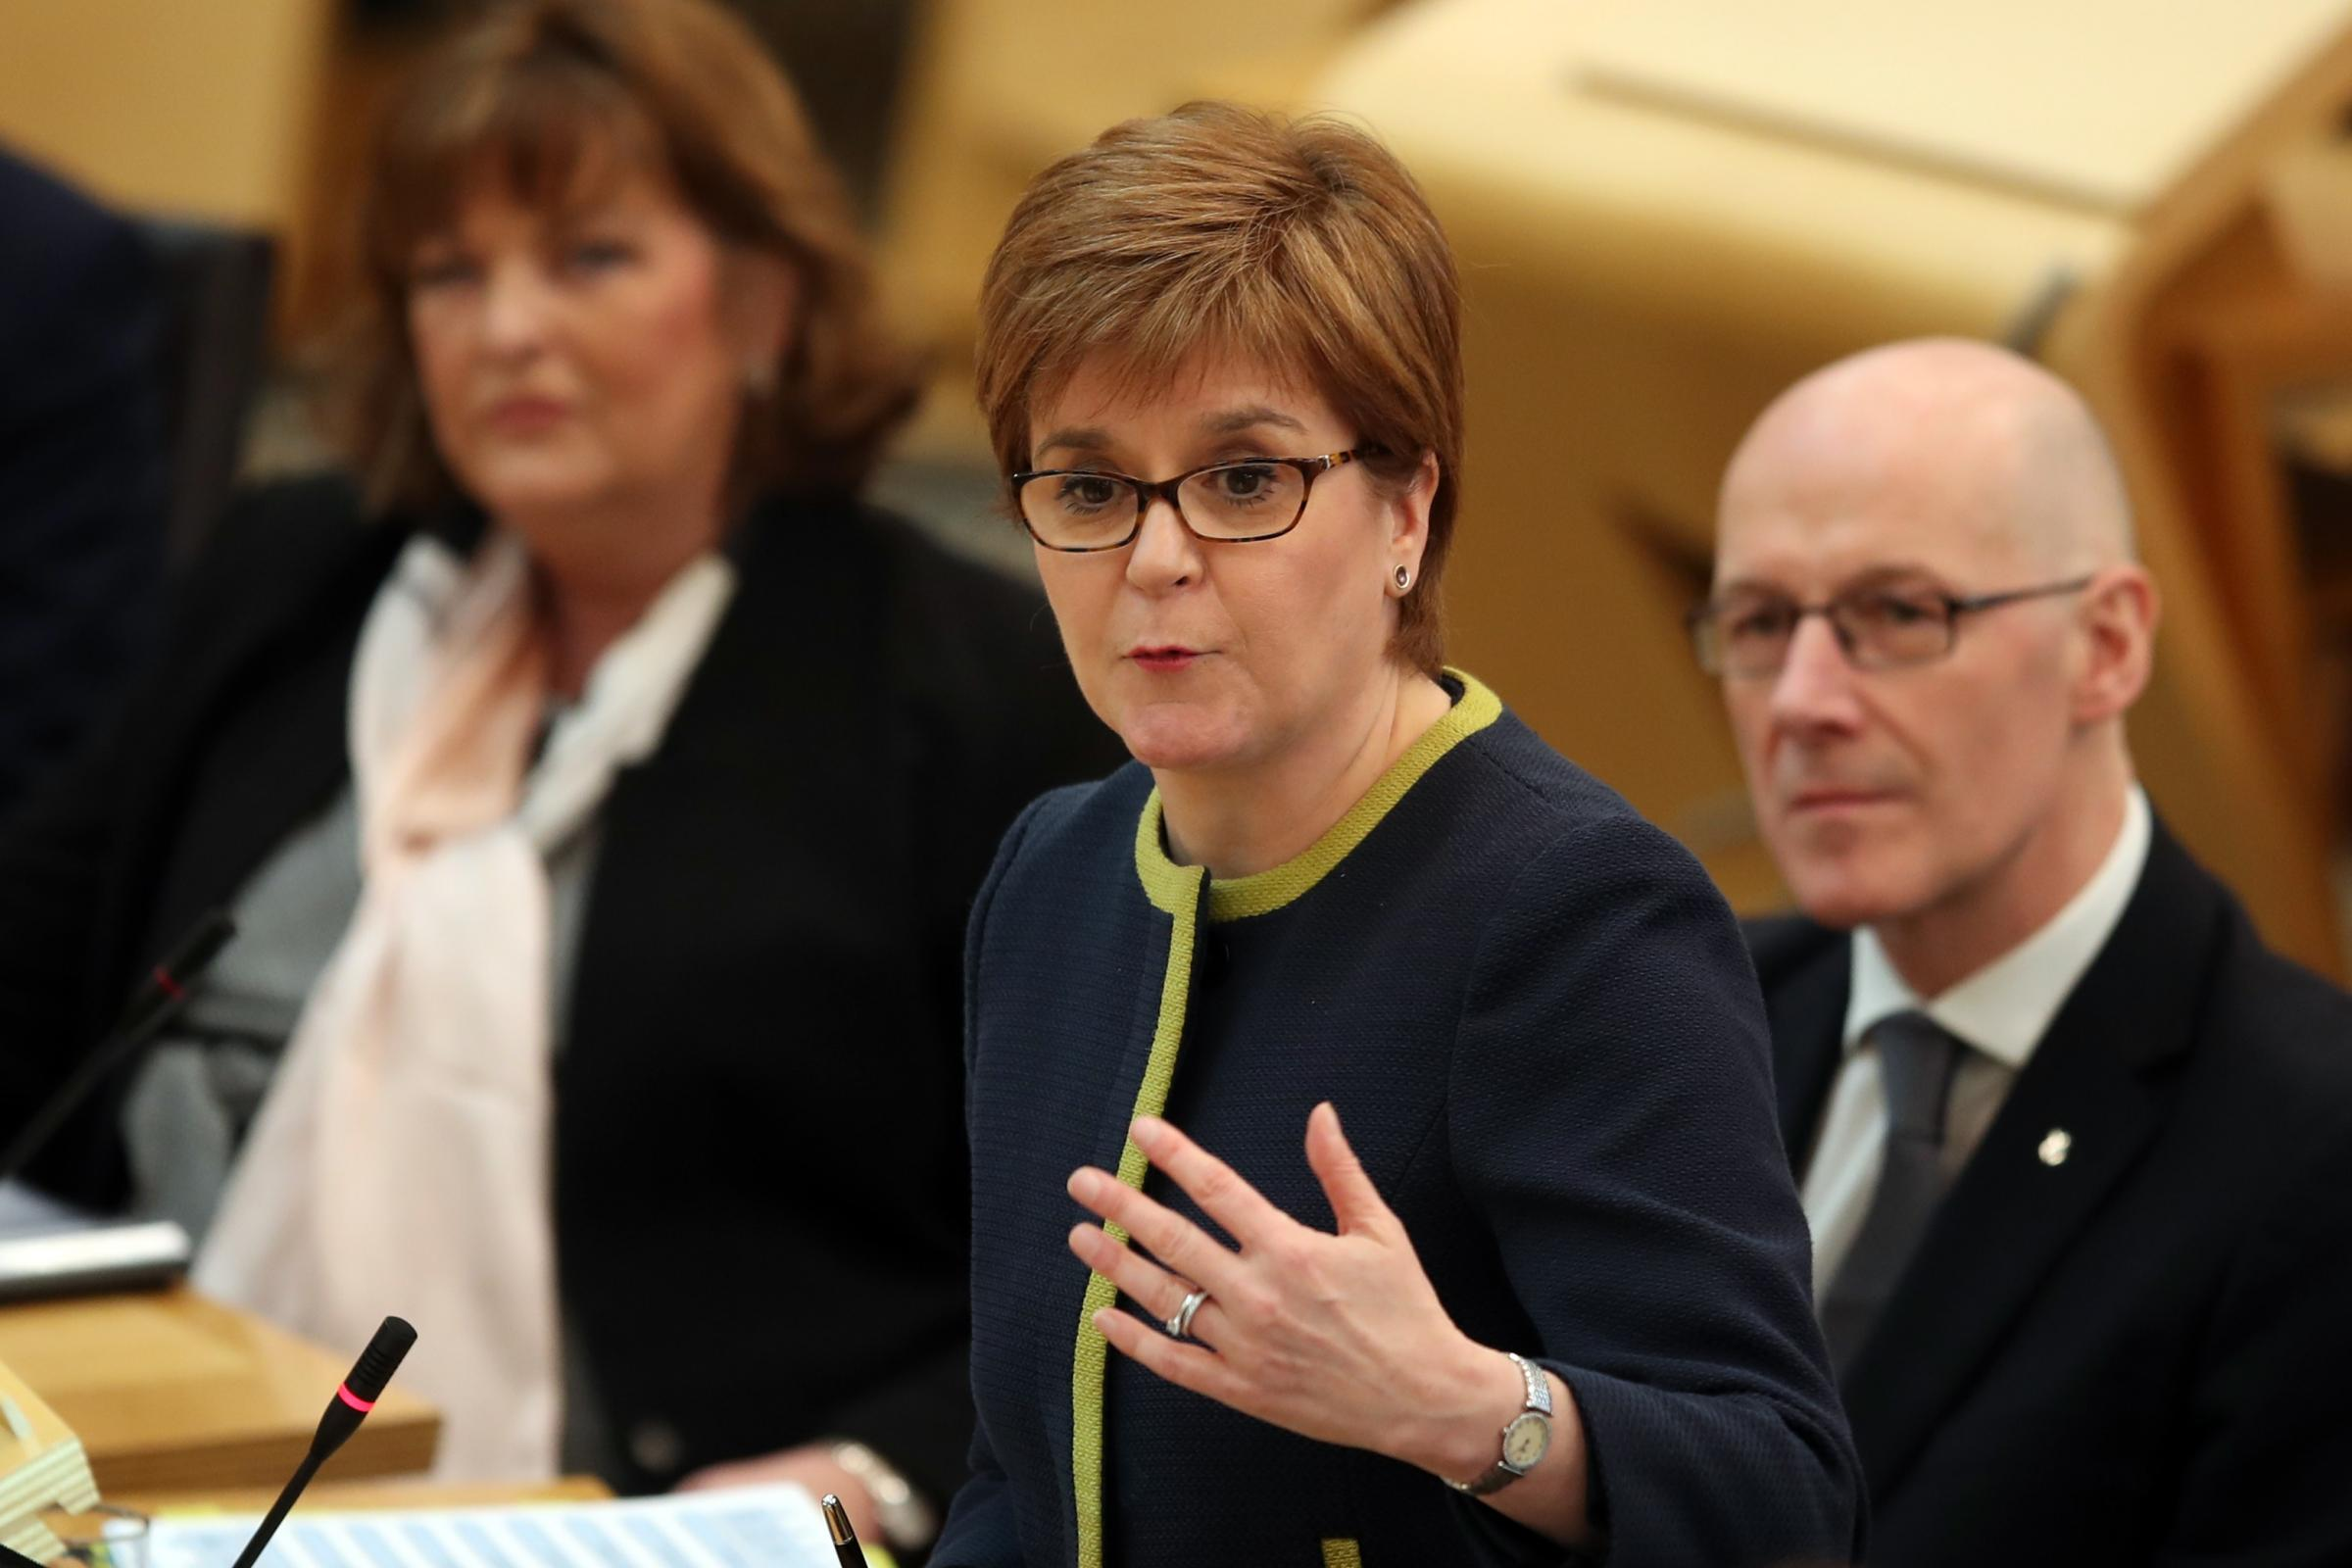 First Minister Nicola Sturgeon answered a question about indyref2 timing at FMQs